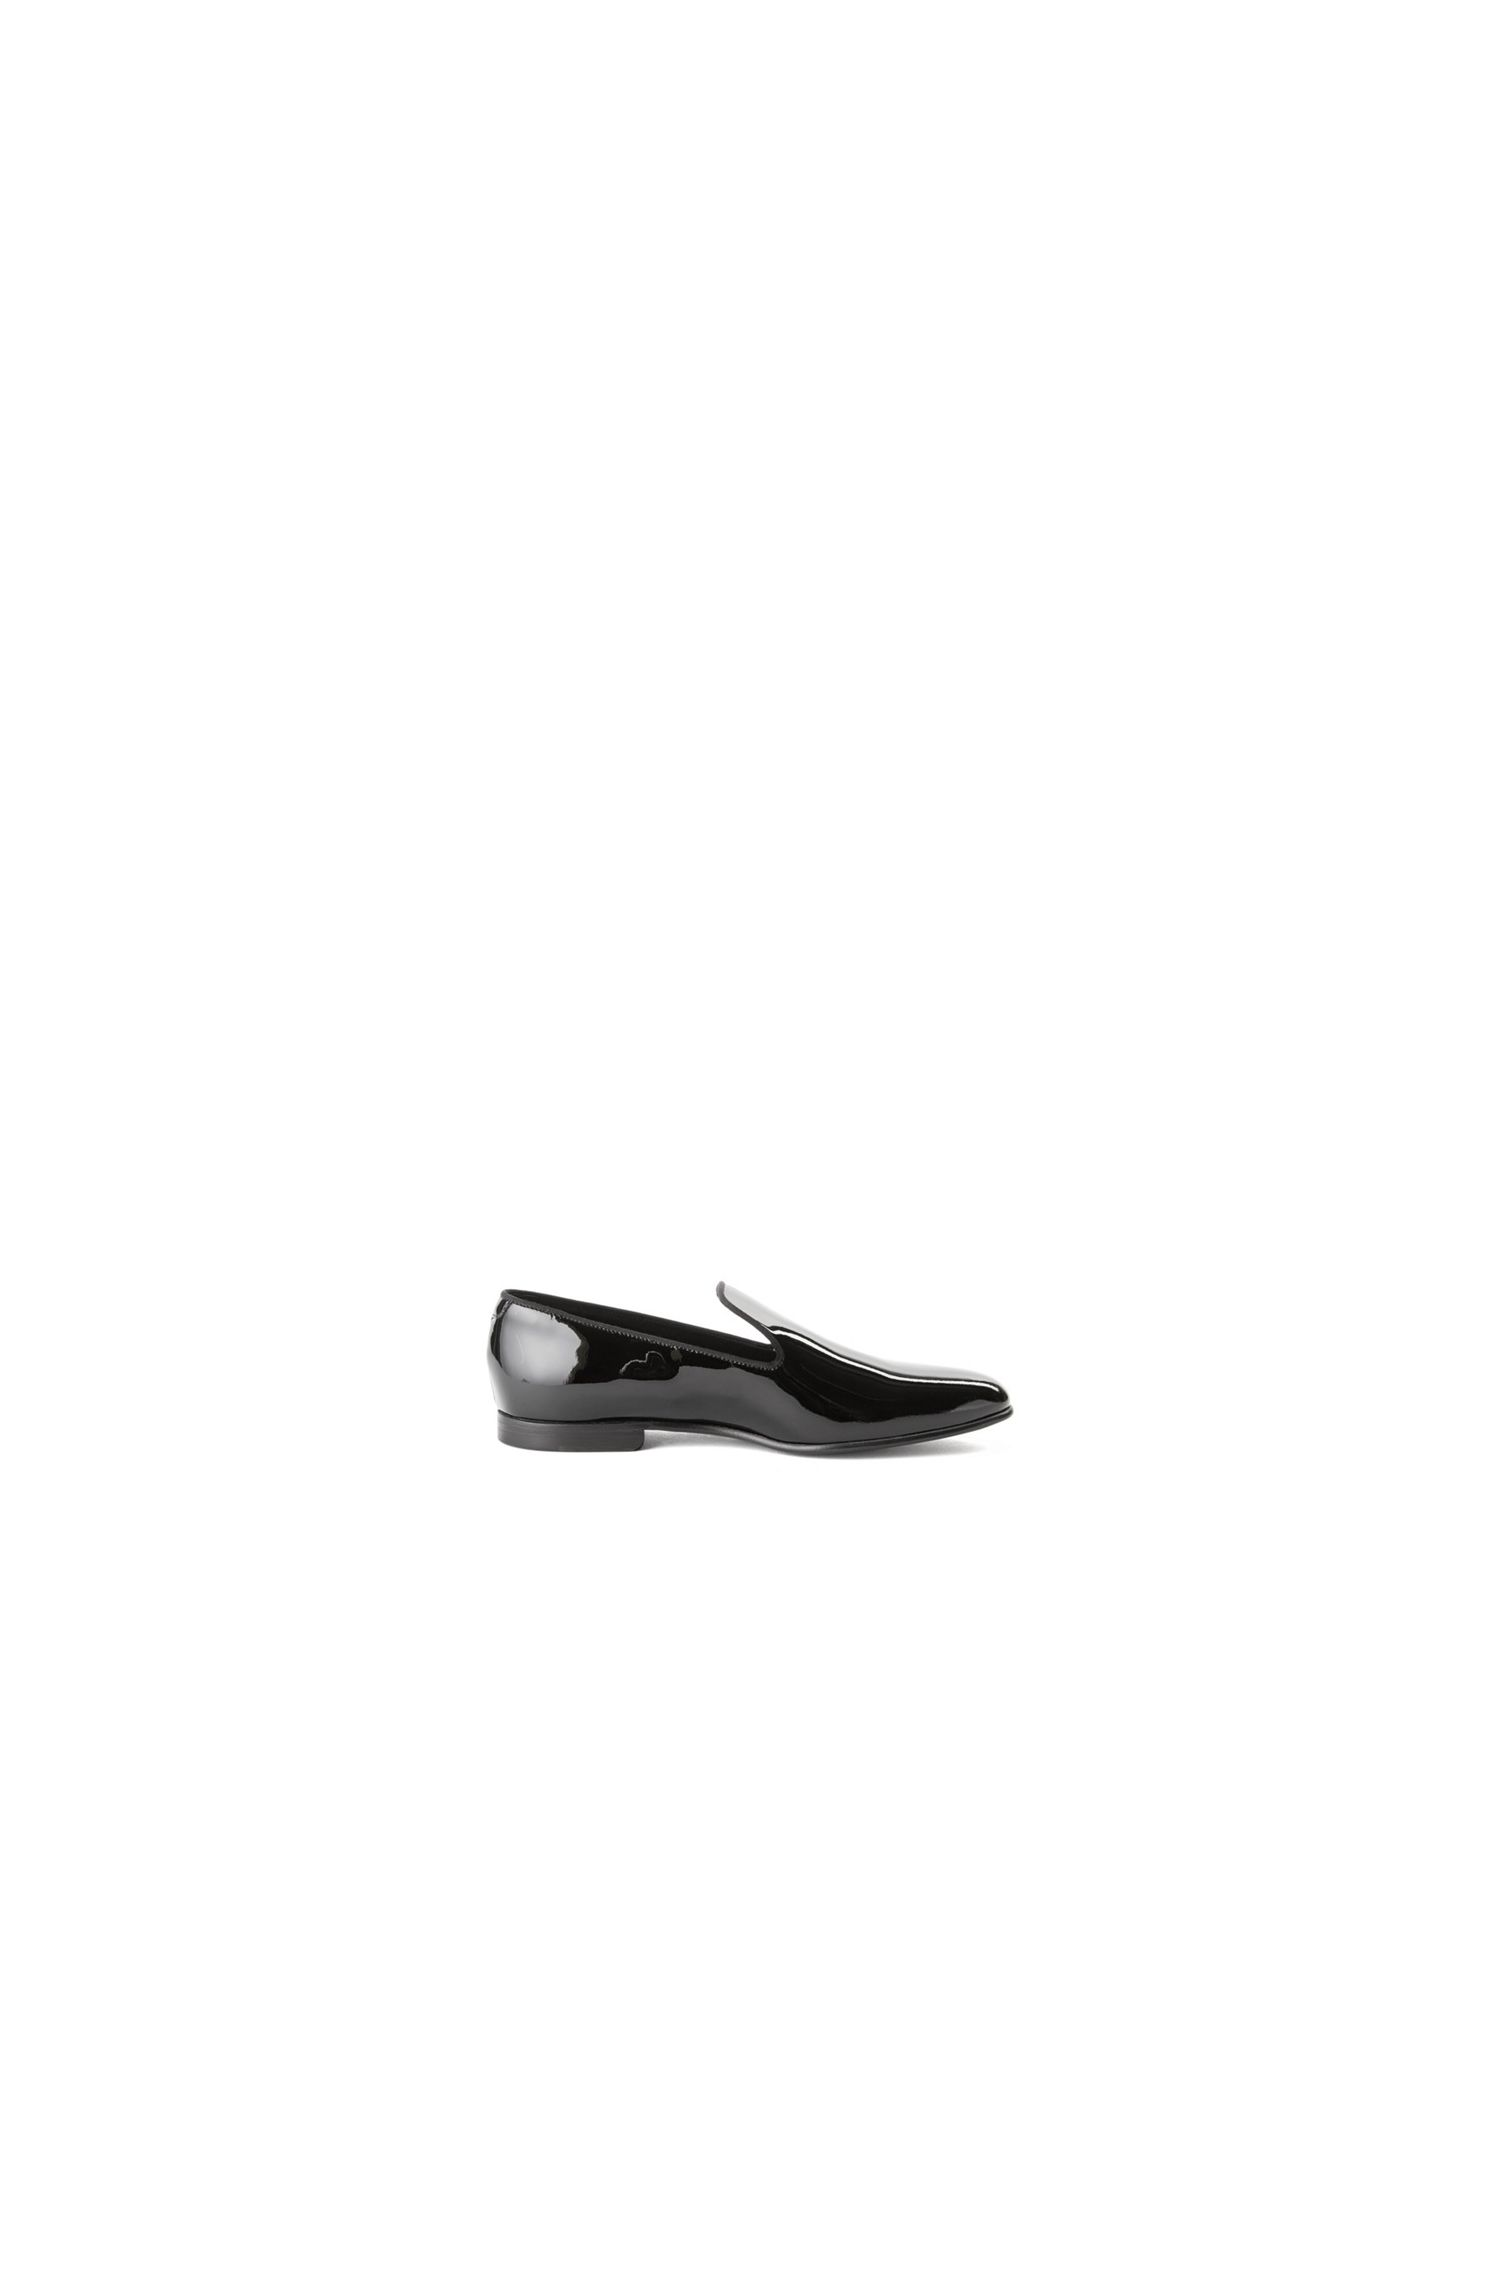 Contemporary loafers in Italian patent leather